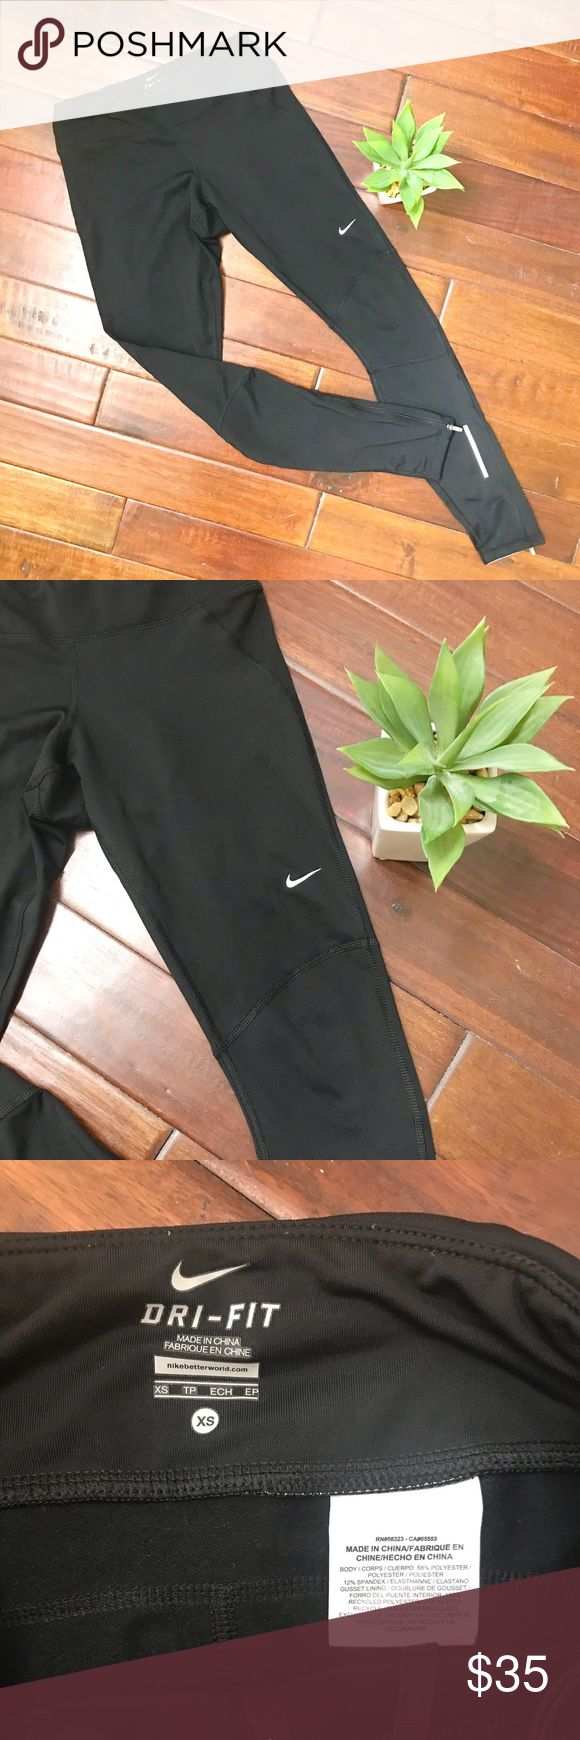 NIKE DRI-FIT JOGGING PANT Nike die-fit running pant in black. Size xs. Excellent condition. Never worn. Nike Pants Track Pants & Joggers